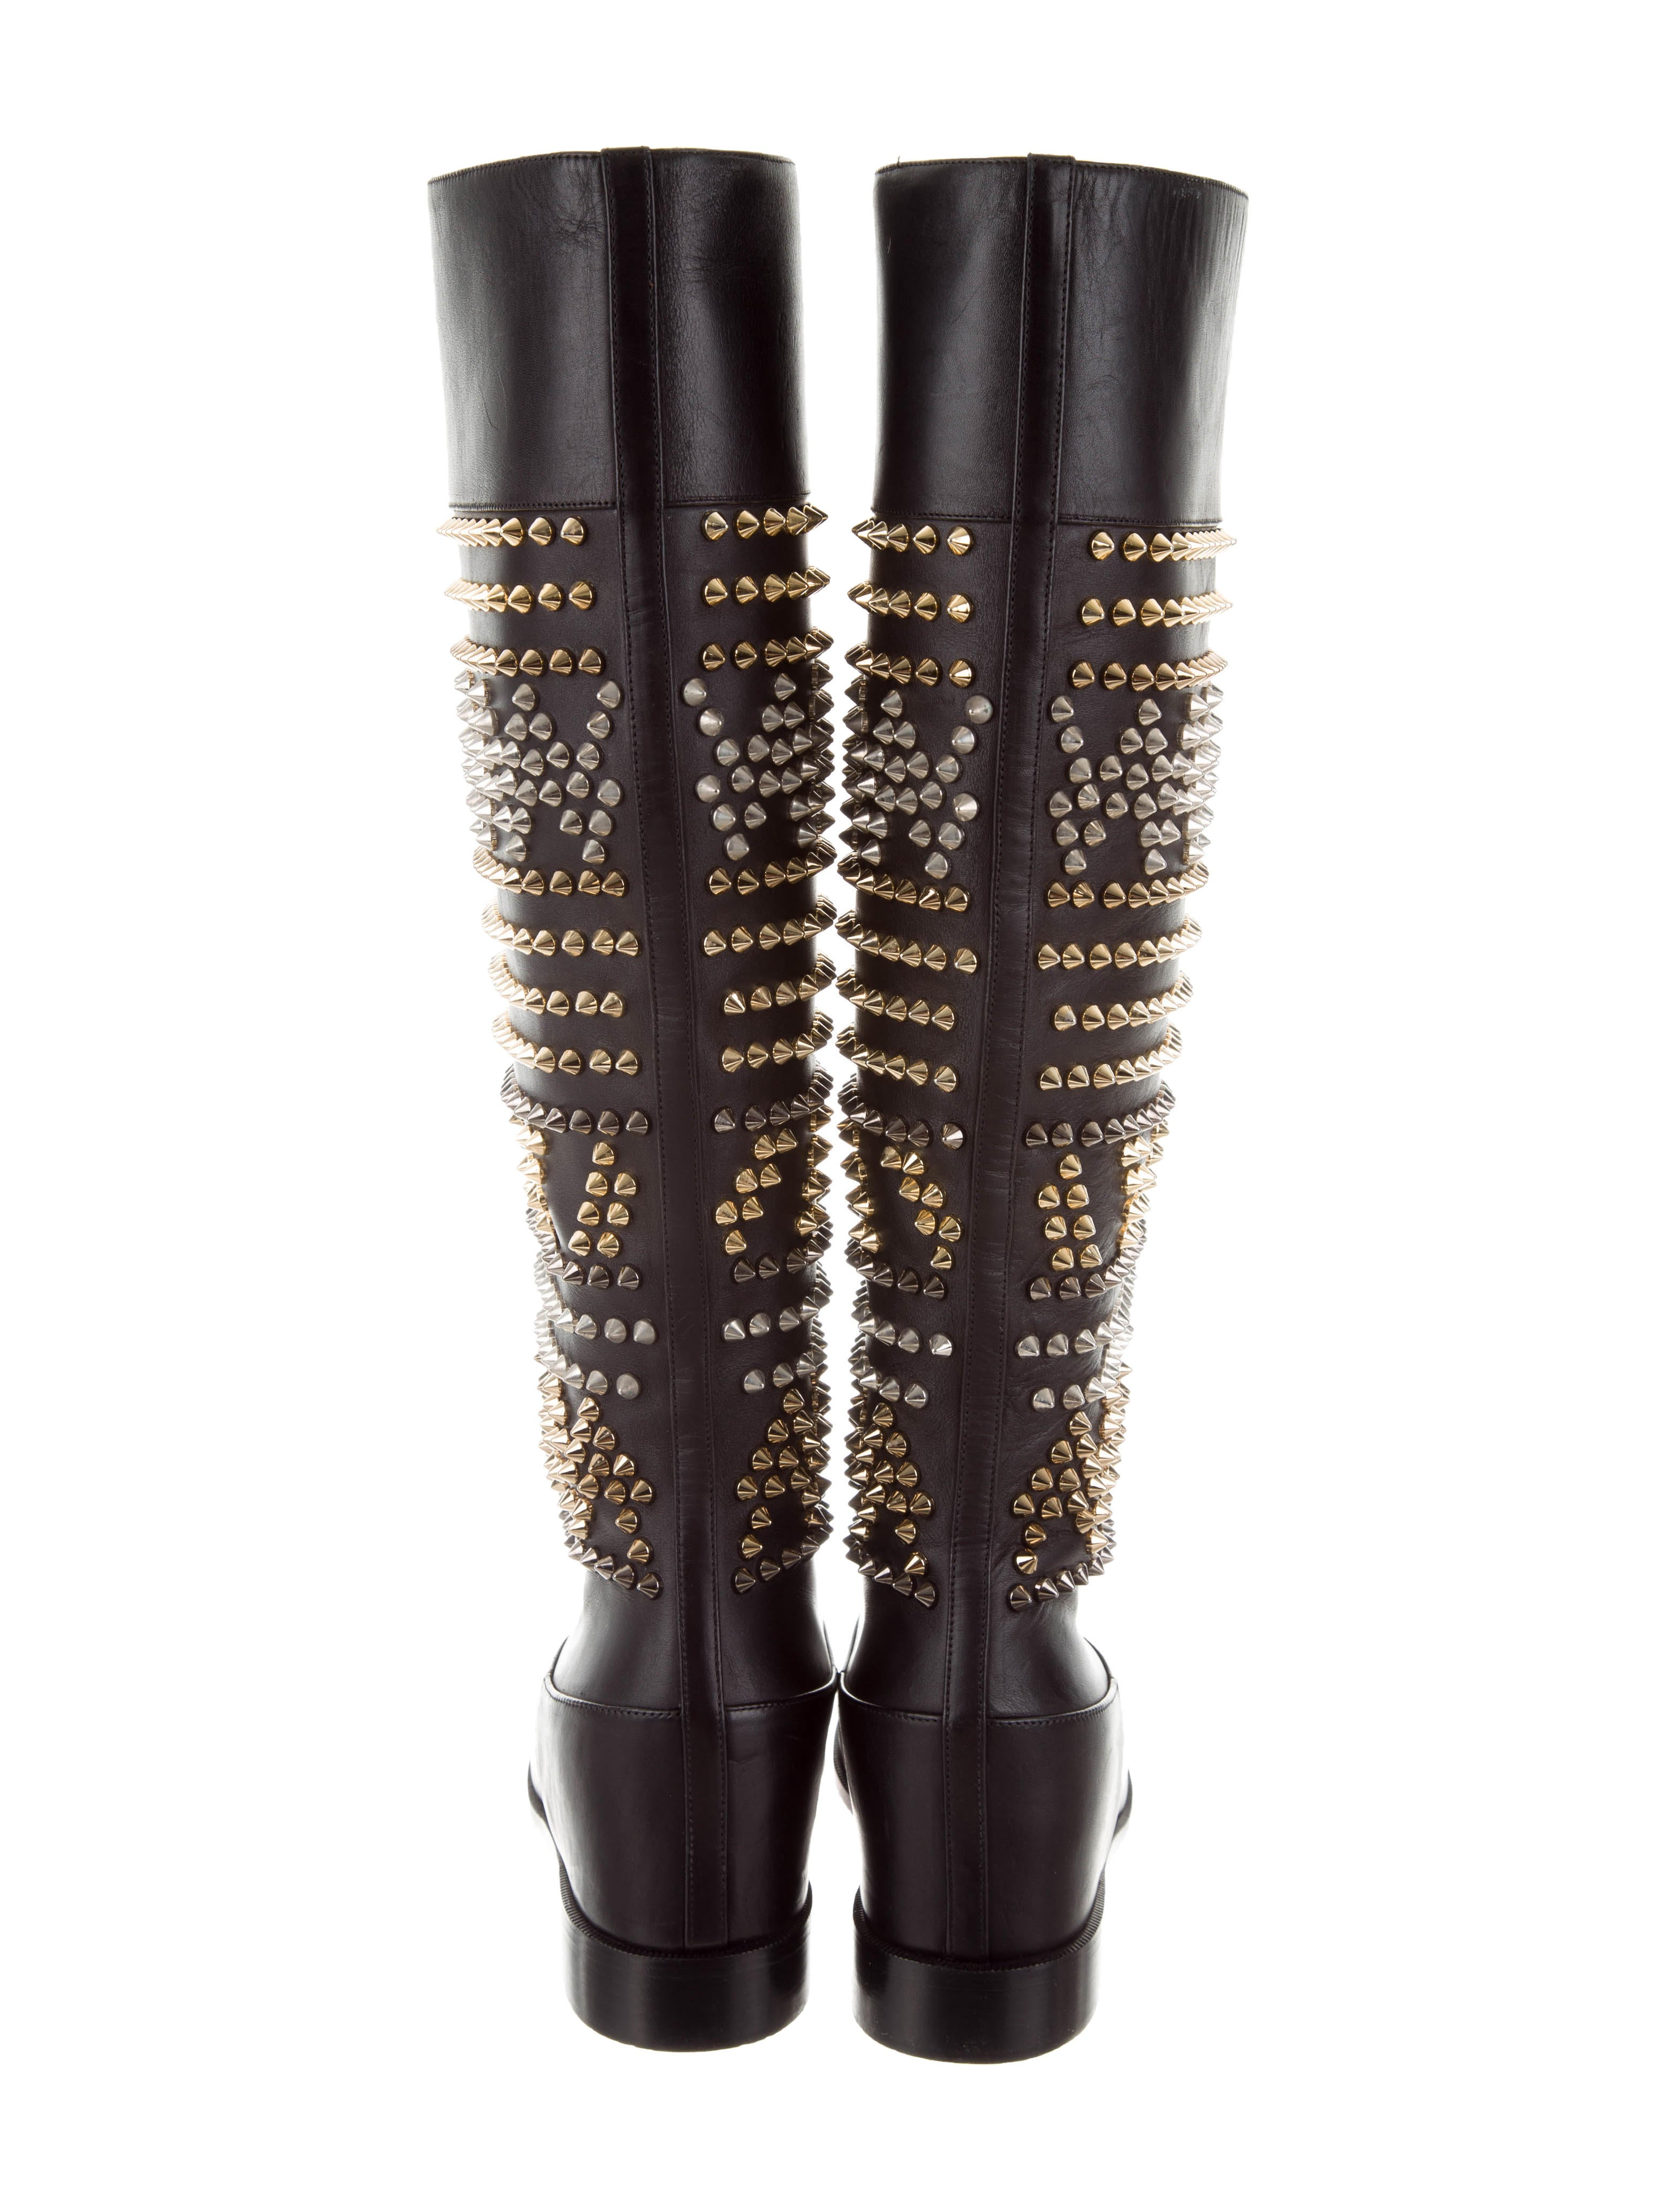 outlet pick a best sale pre order Christian Louboutin Leather Spiked Boots k6j5uH